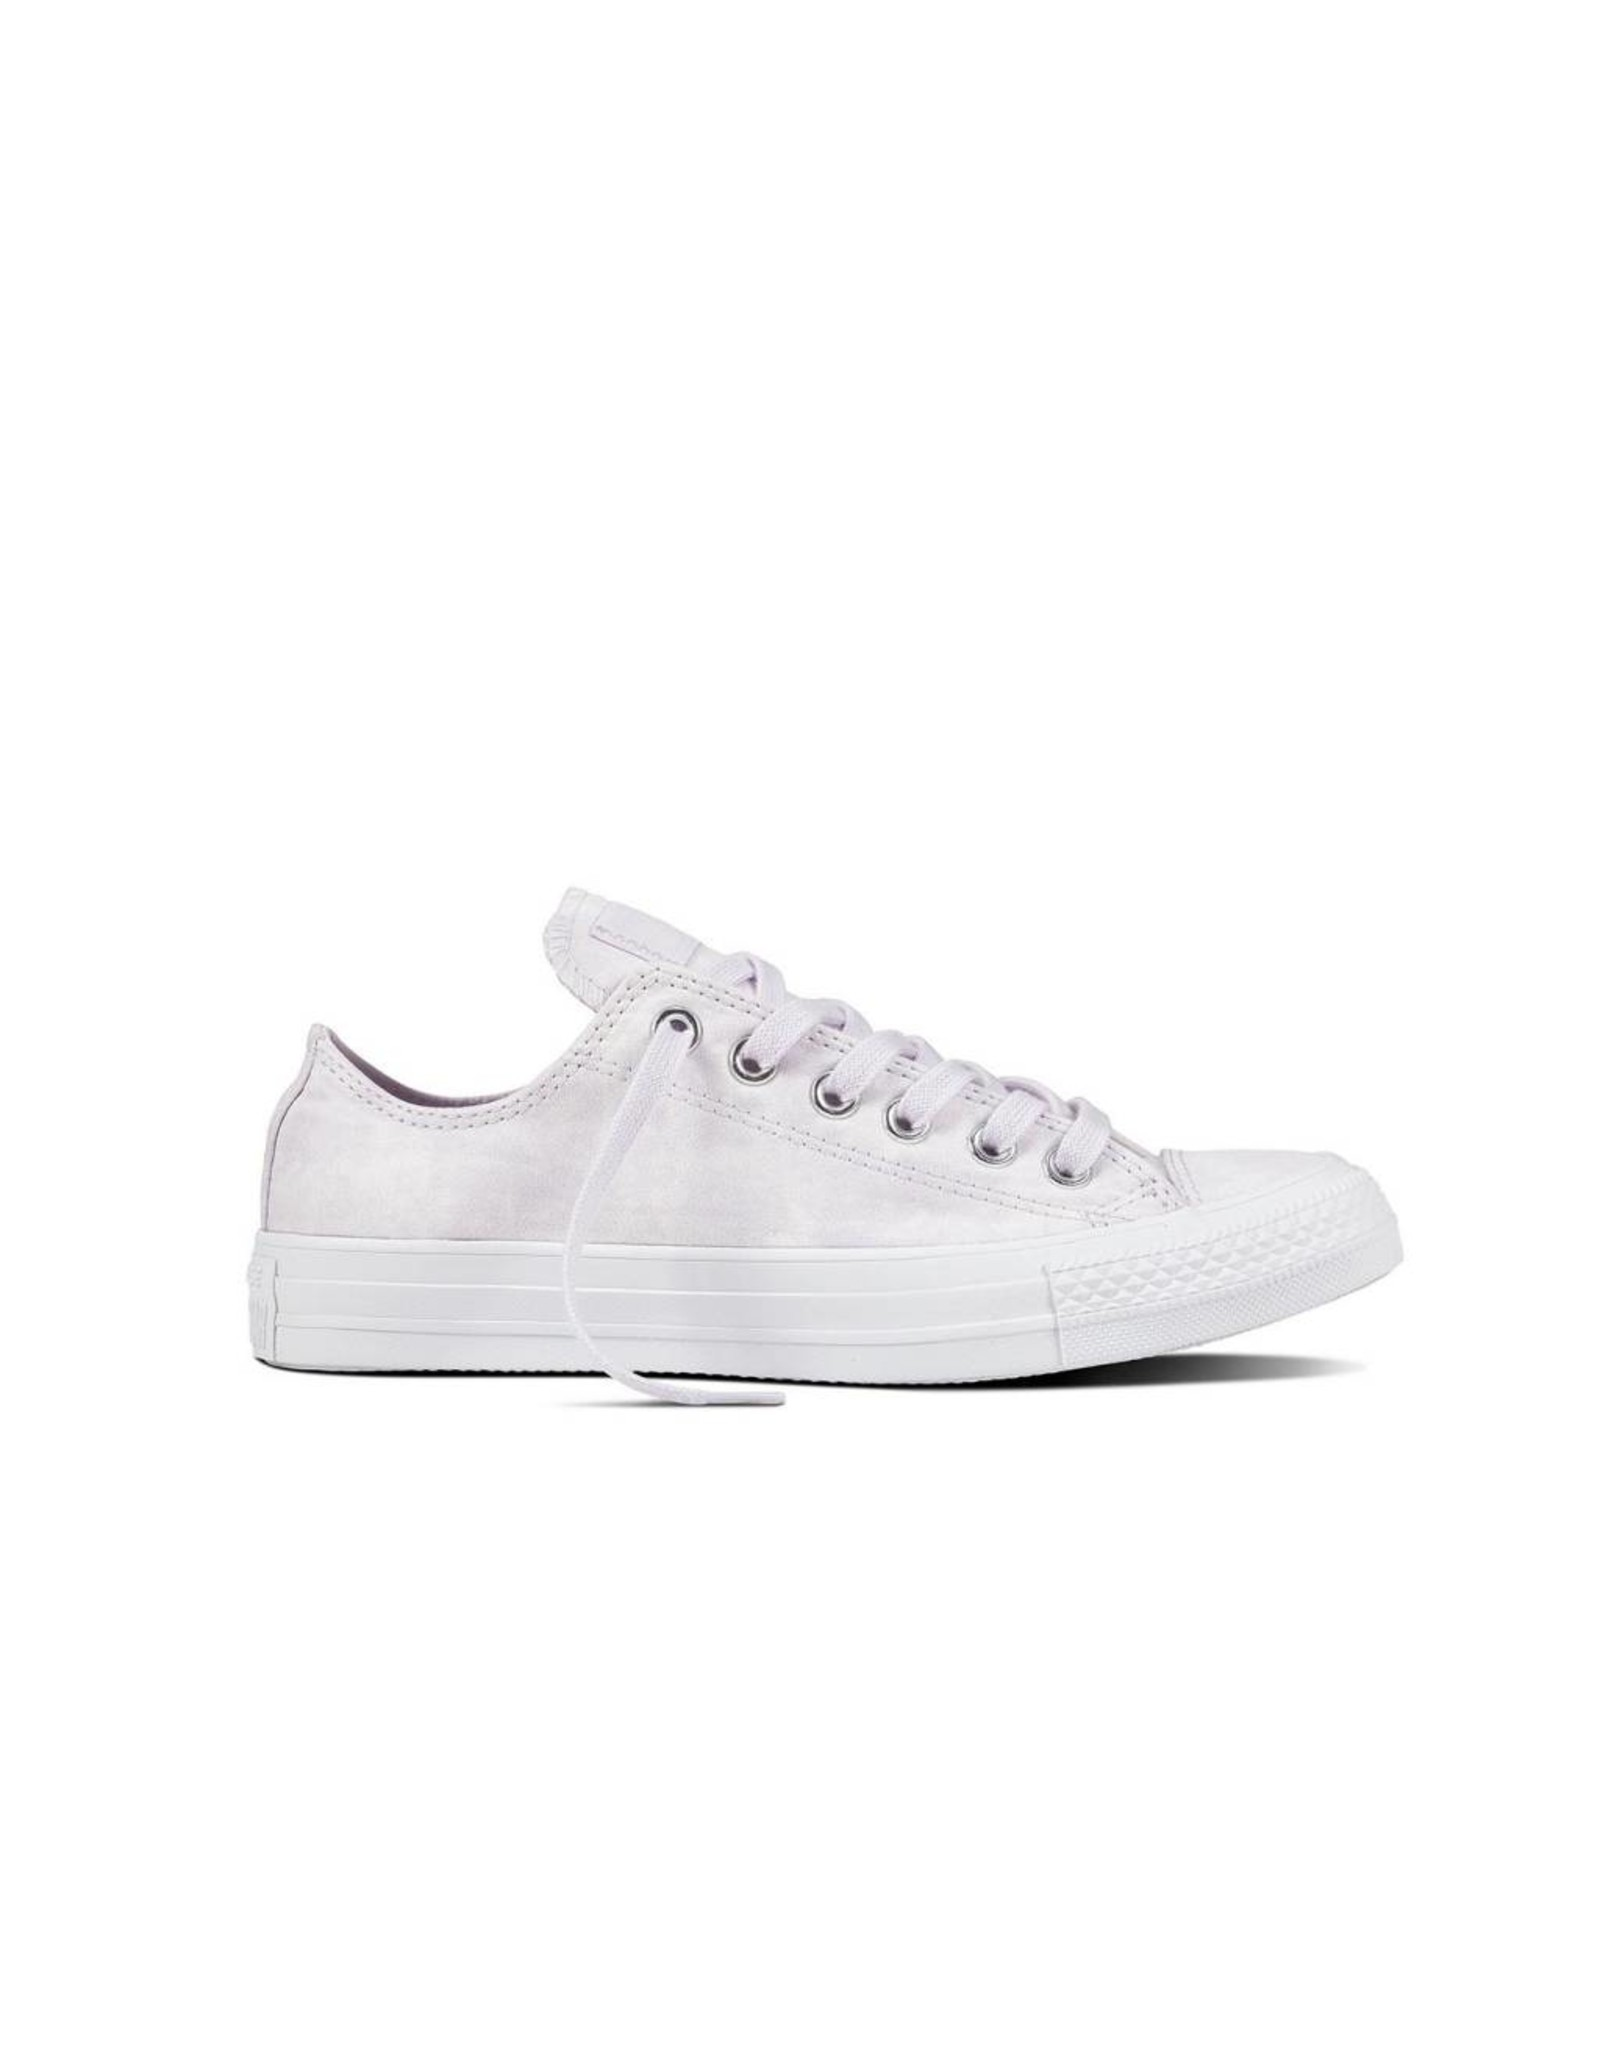 CONVERSE CHUCK TAYLOR OX BARELY GRAPE/BARELY GRAPE C12GRA-159655C